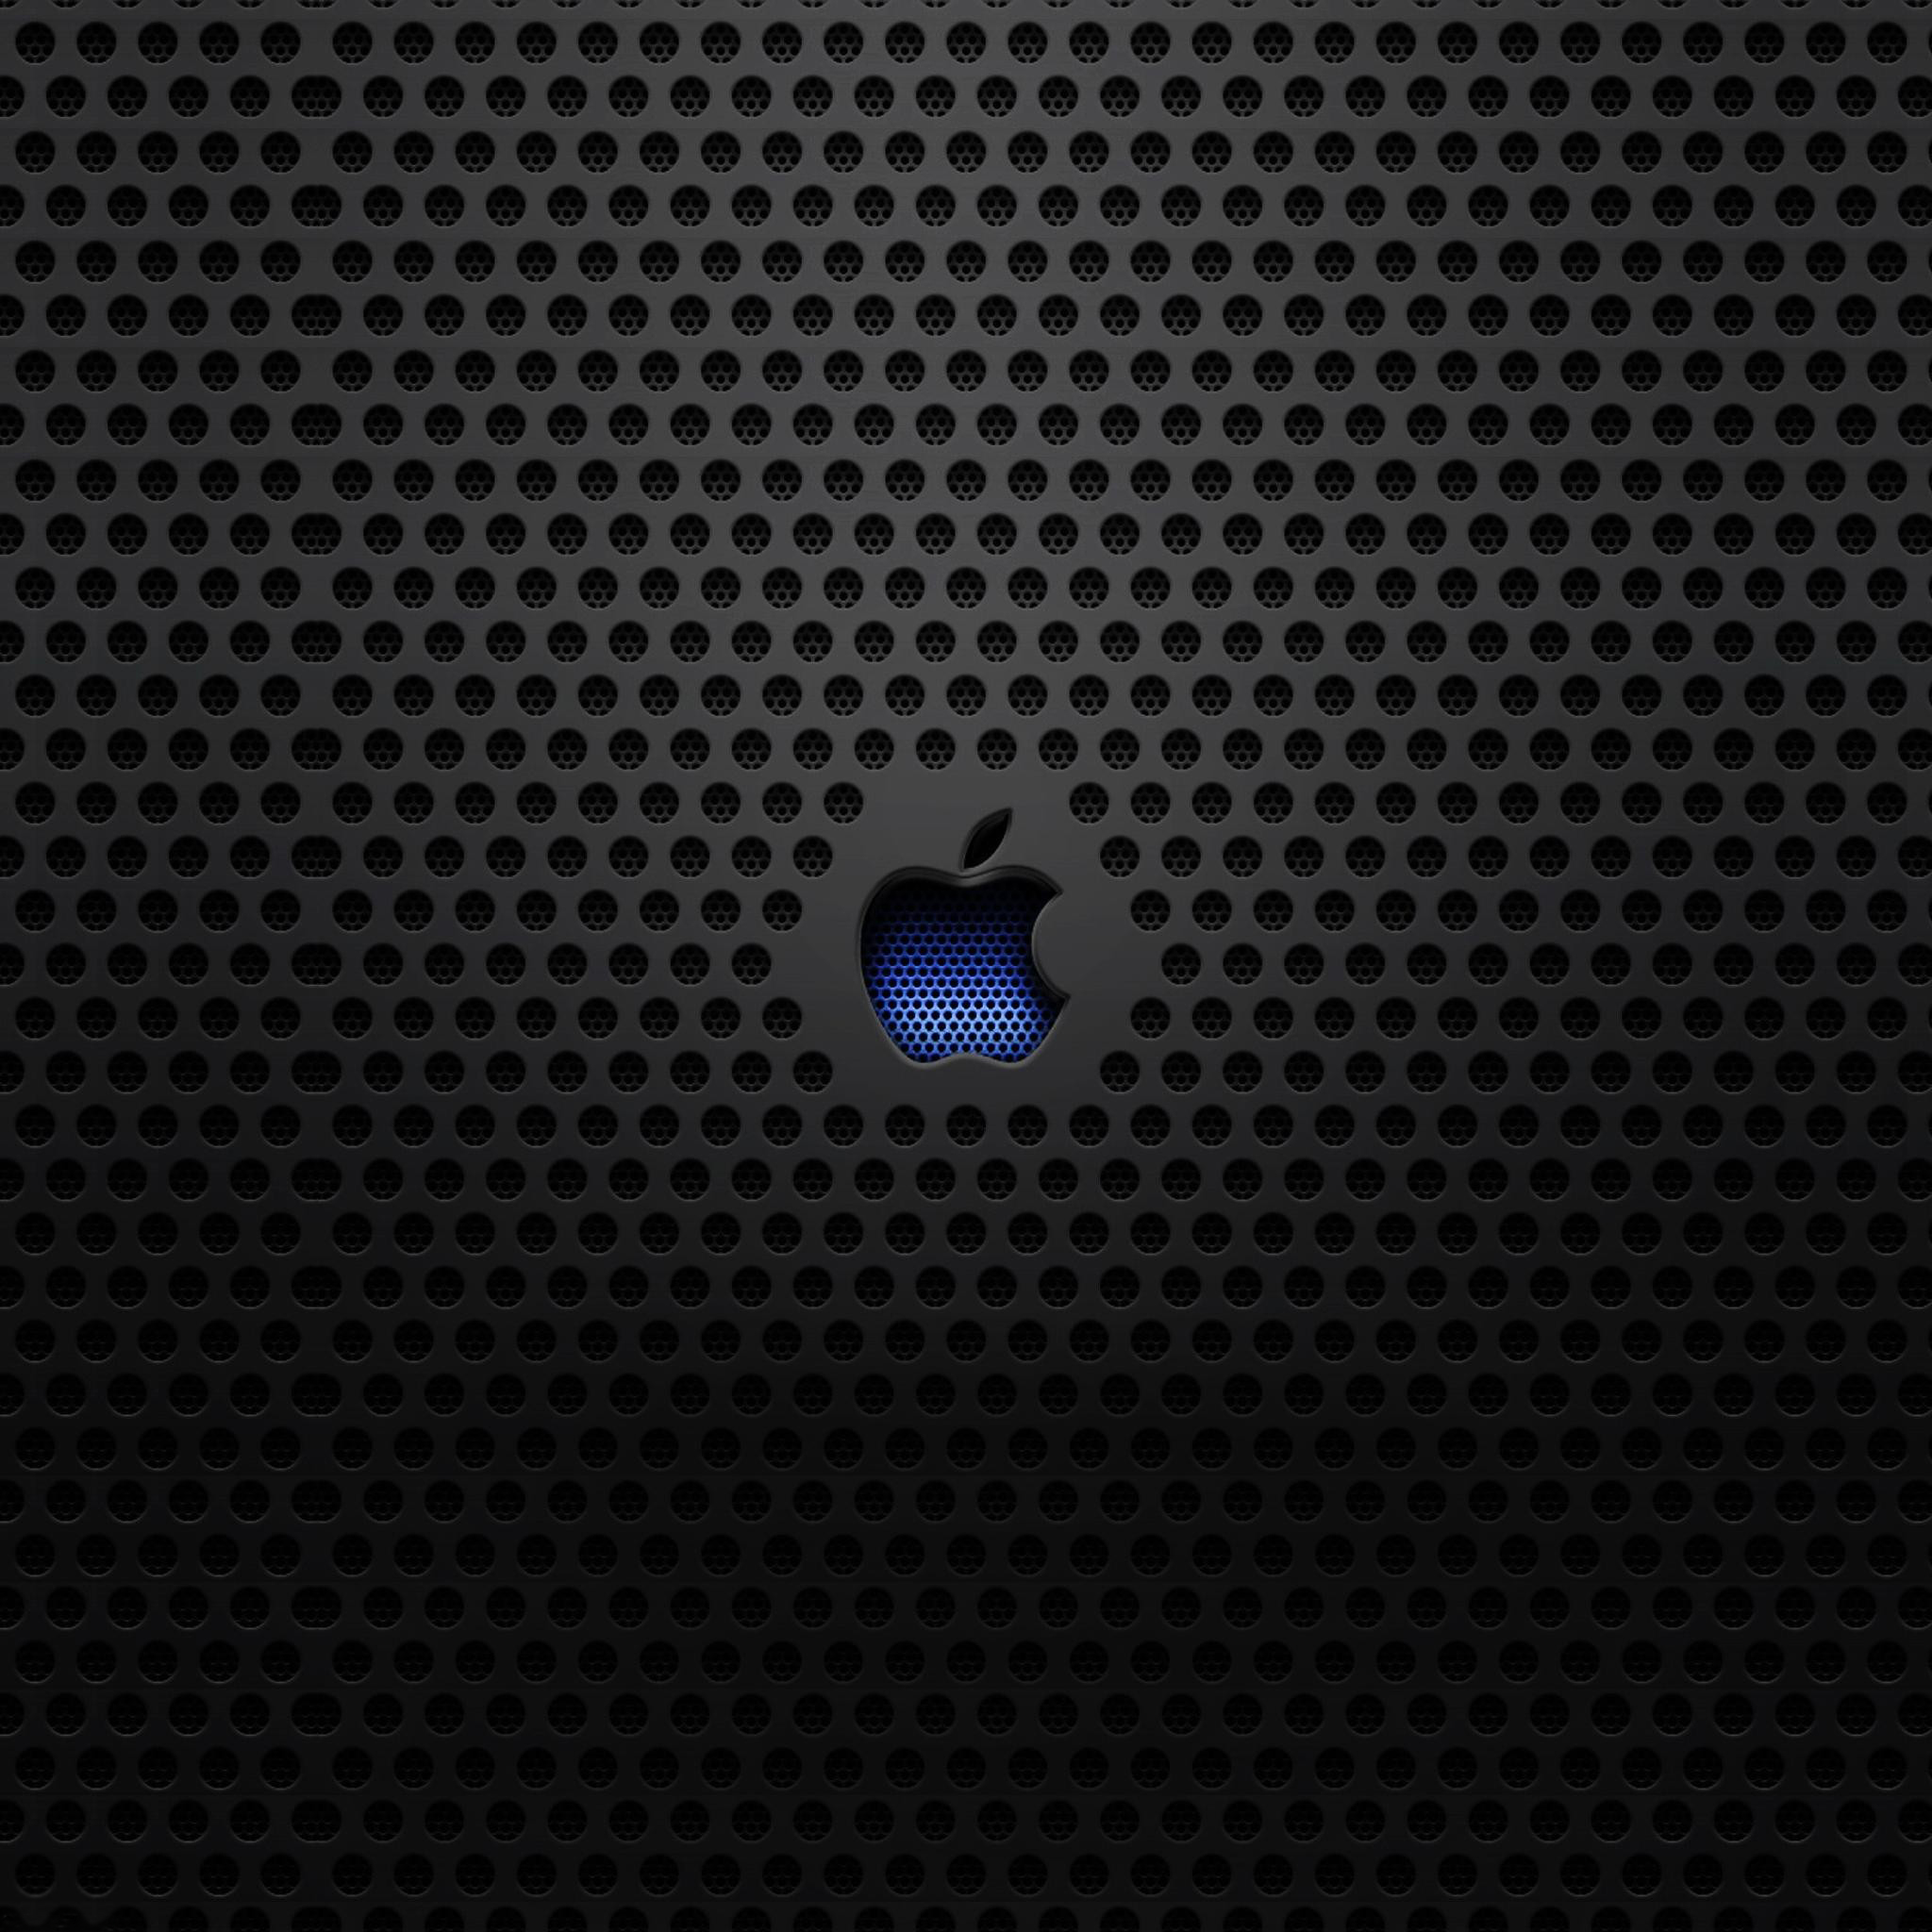 Apple-Blur-Logo-3Wallpapers-iPad-Retina